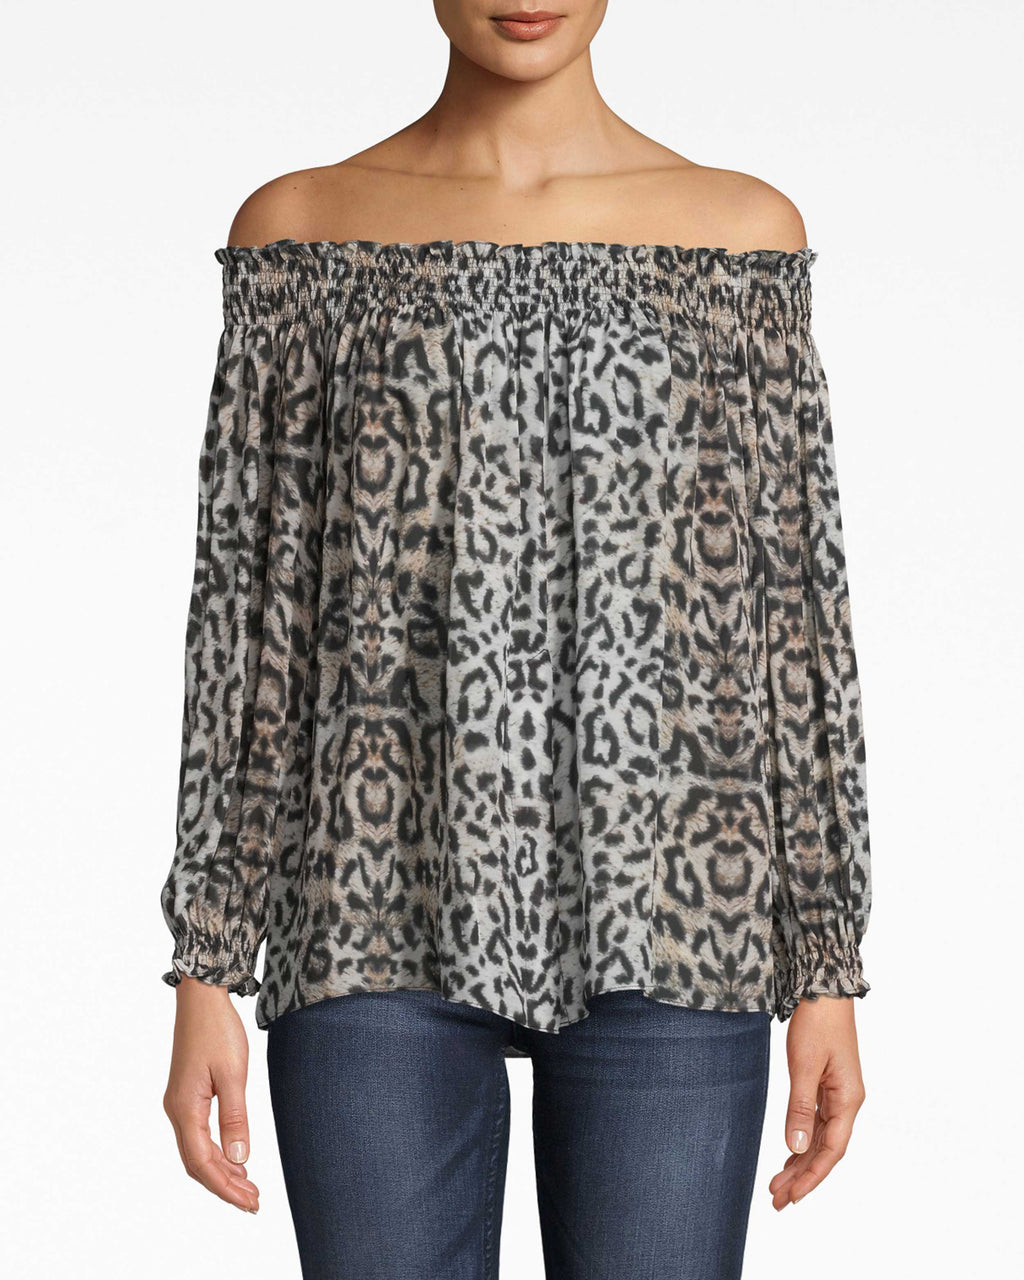 "BG10339 - LEOPARD ""ROCKY"" SMOCKED OFF THE SHOULDER TOP - tops - shirts - OUR CLASSIC ROCKY TOP GETS AN UPDATE IN LEOPARD PRINT. THIS TOP IS SMOCKED OFF THE SHOULDER AND FEATURES BILLOWY SLEEVES THAT CINCH AT THE WRIST. WE KNOW YOU'LL BE REACHING FOR THIS LIGHTWEIGHT TOP ALL SPRING AND SUMMER LONG."